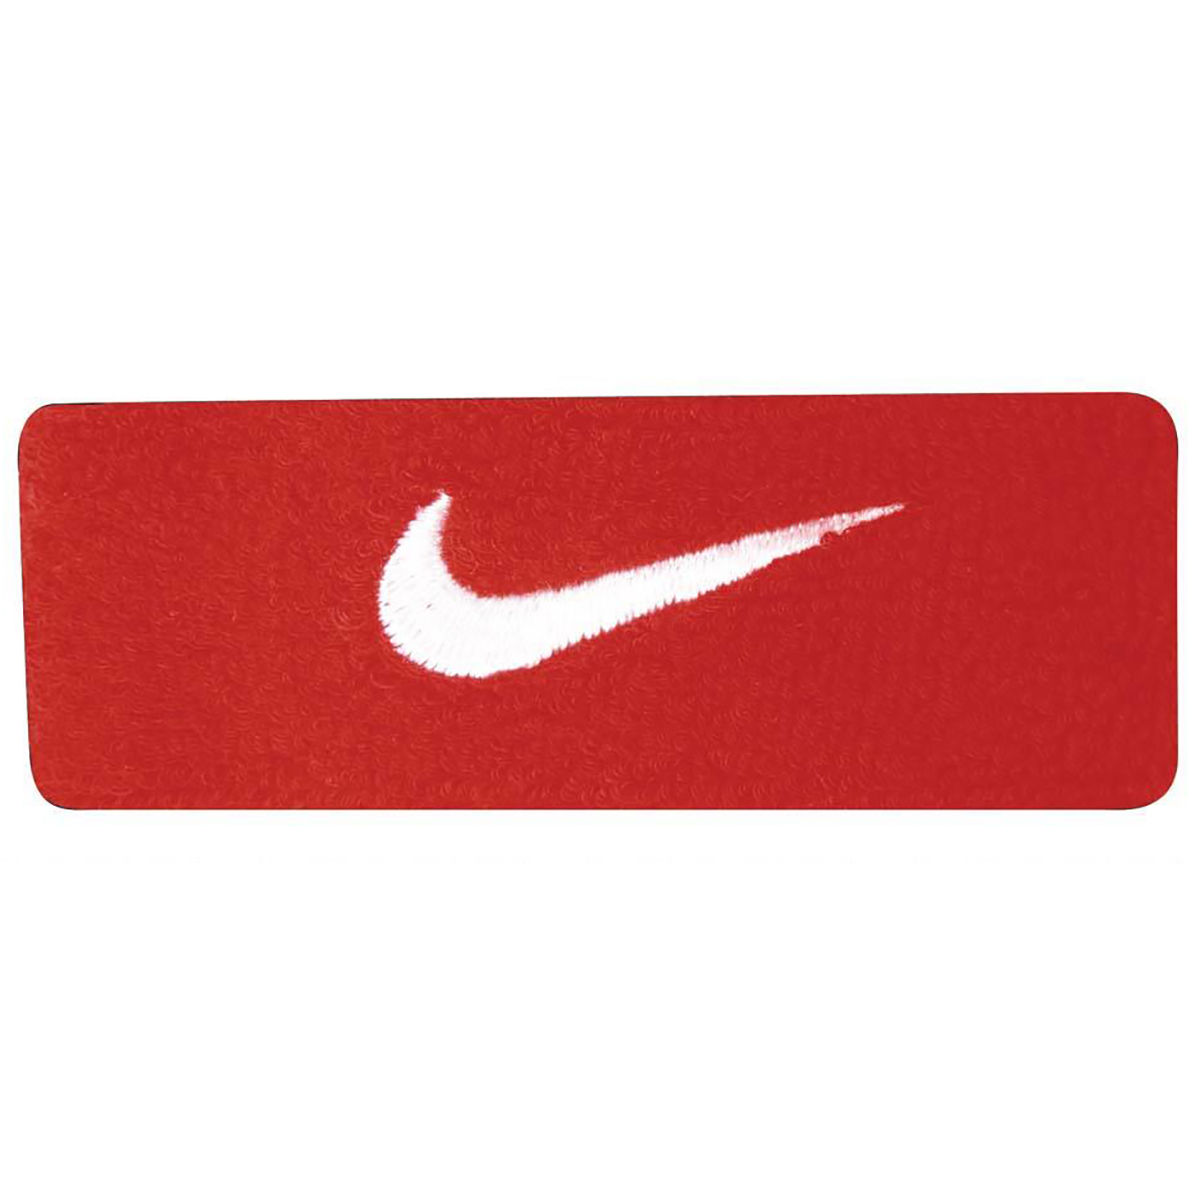 Nike Swoosh Bicep Bands Red 1 Pair